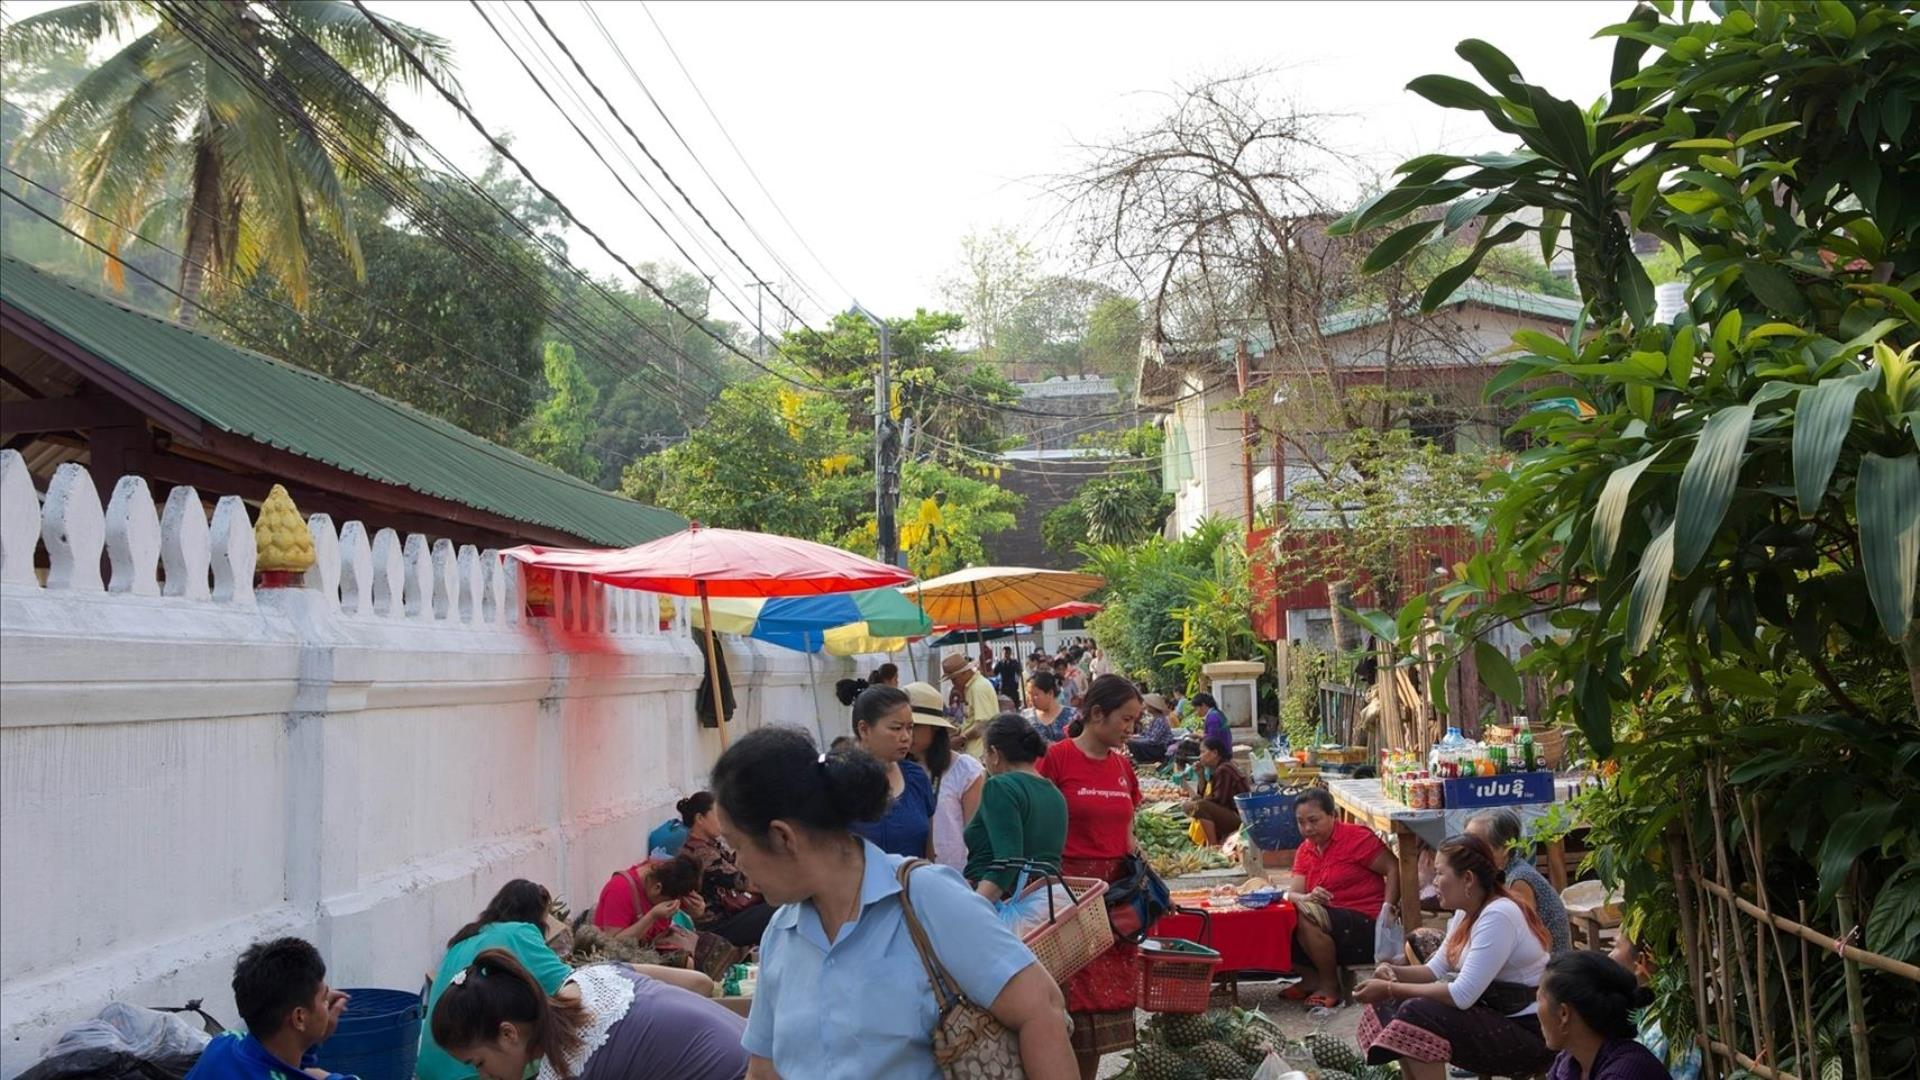 Laos, Luang Prabang: Local Market Tour - 40 mins | Virtual Tour